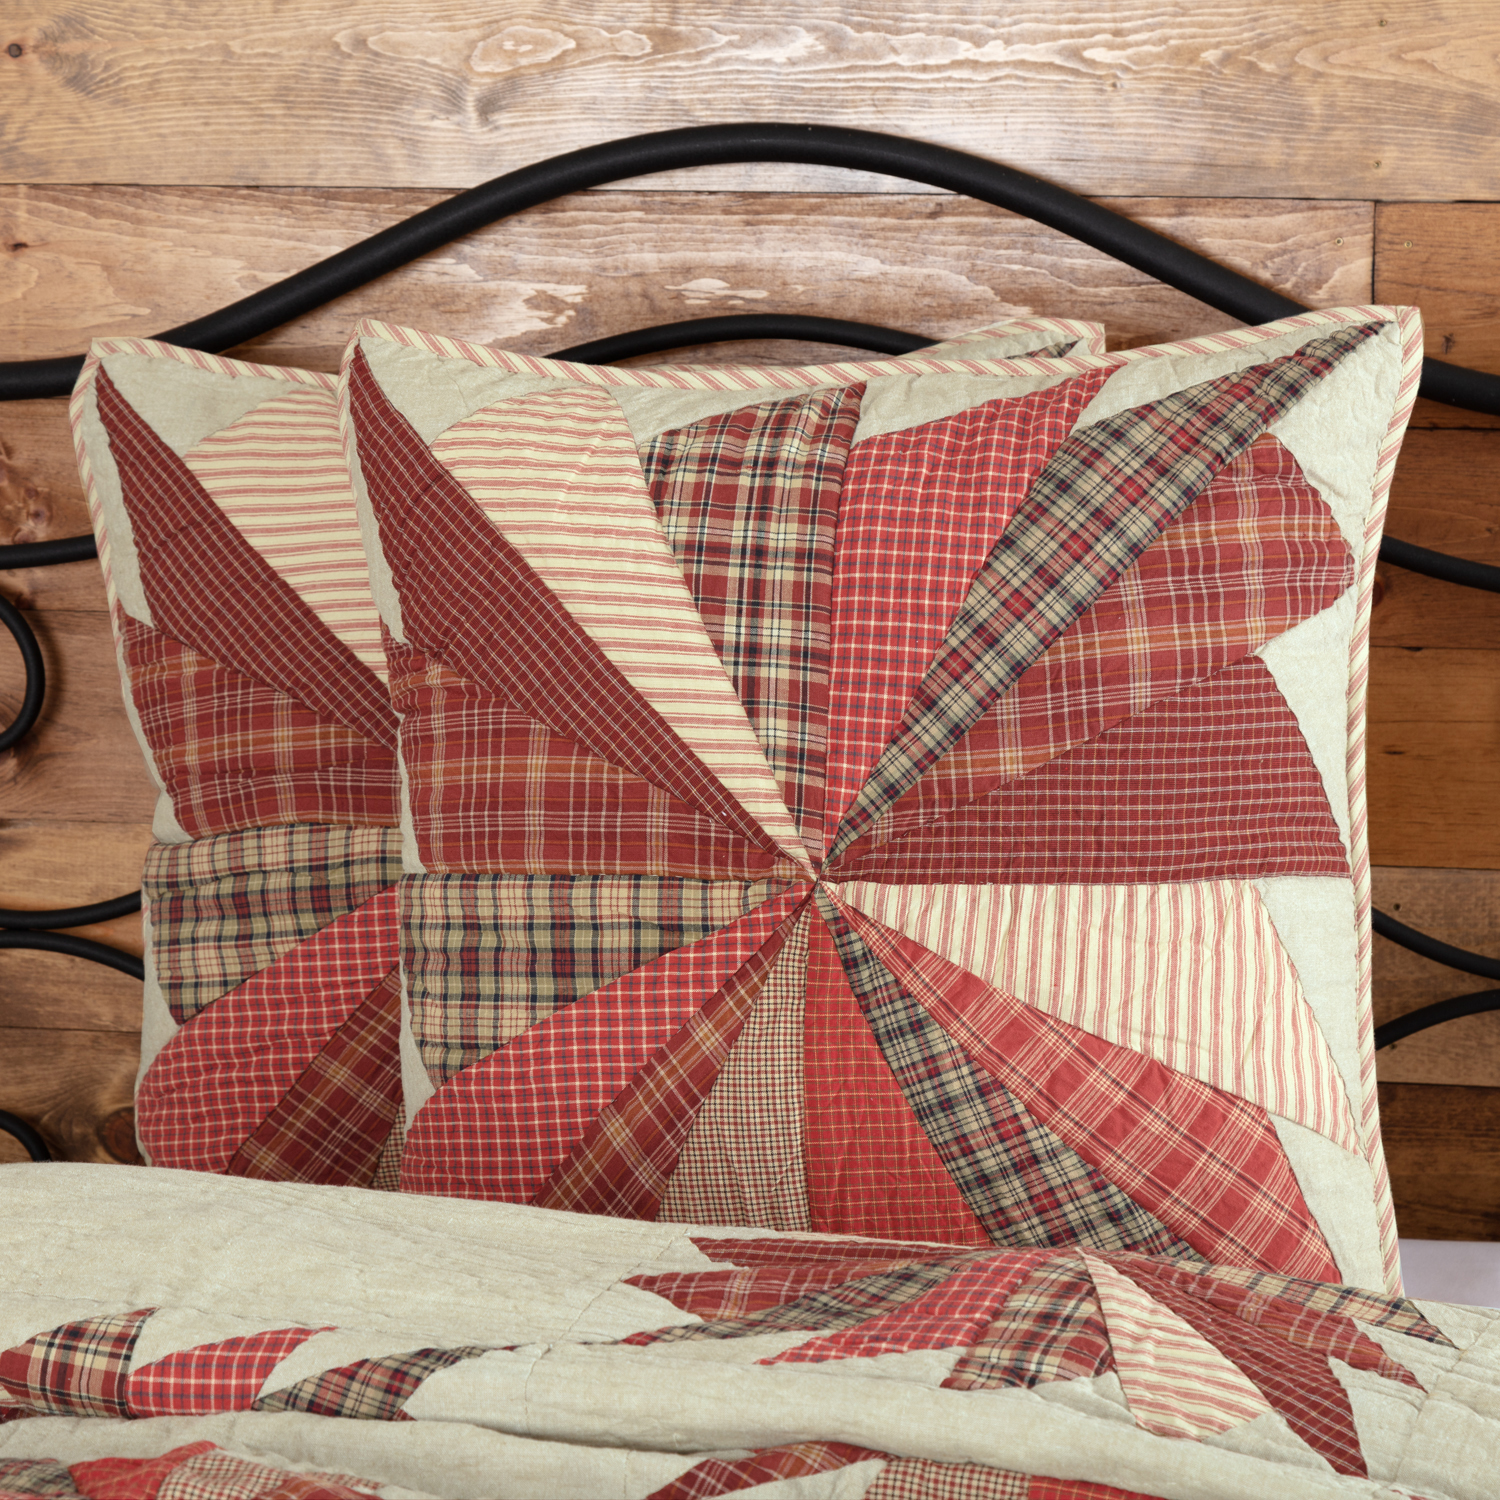 Barn Red Rustic & Lodge Bedding Wilder Cotton Hand Quilted Patchwork Chambray Euro Sham